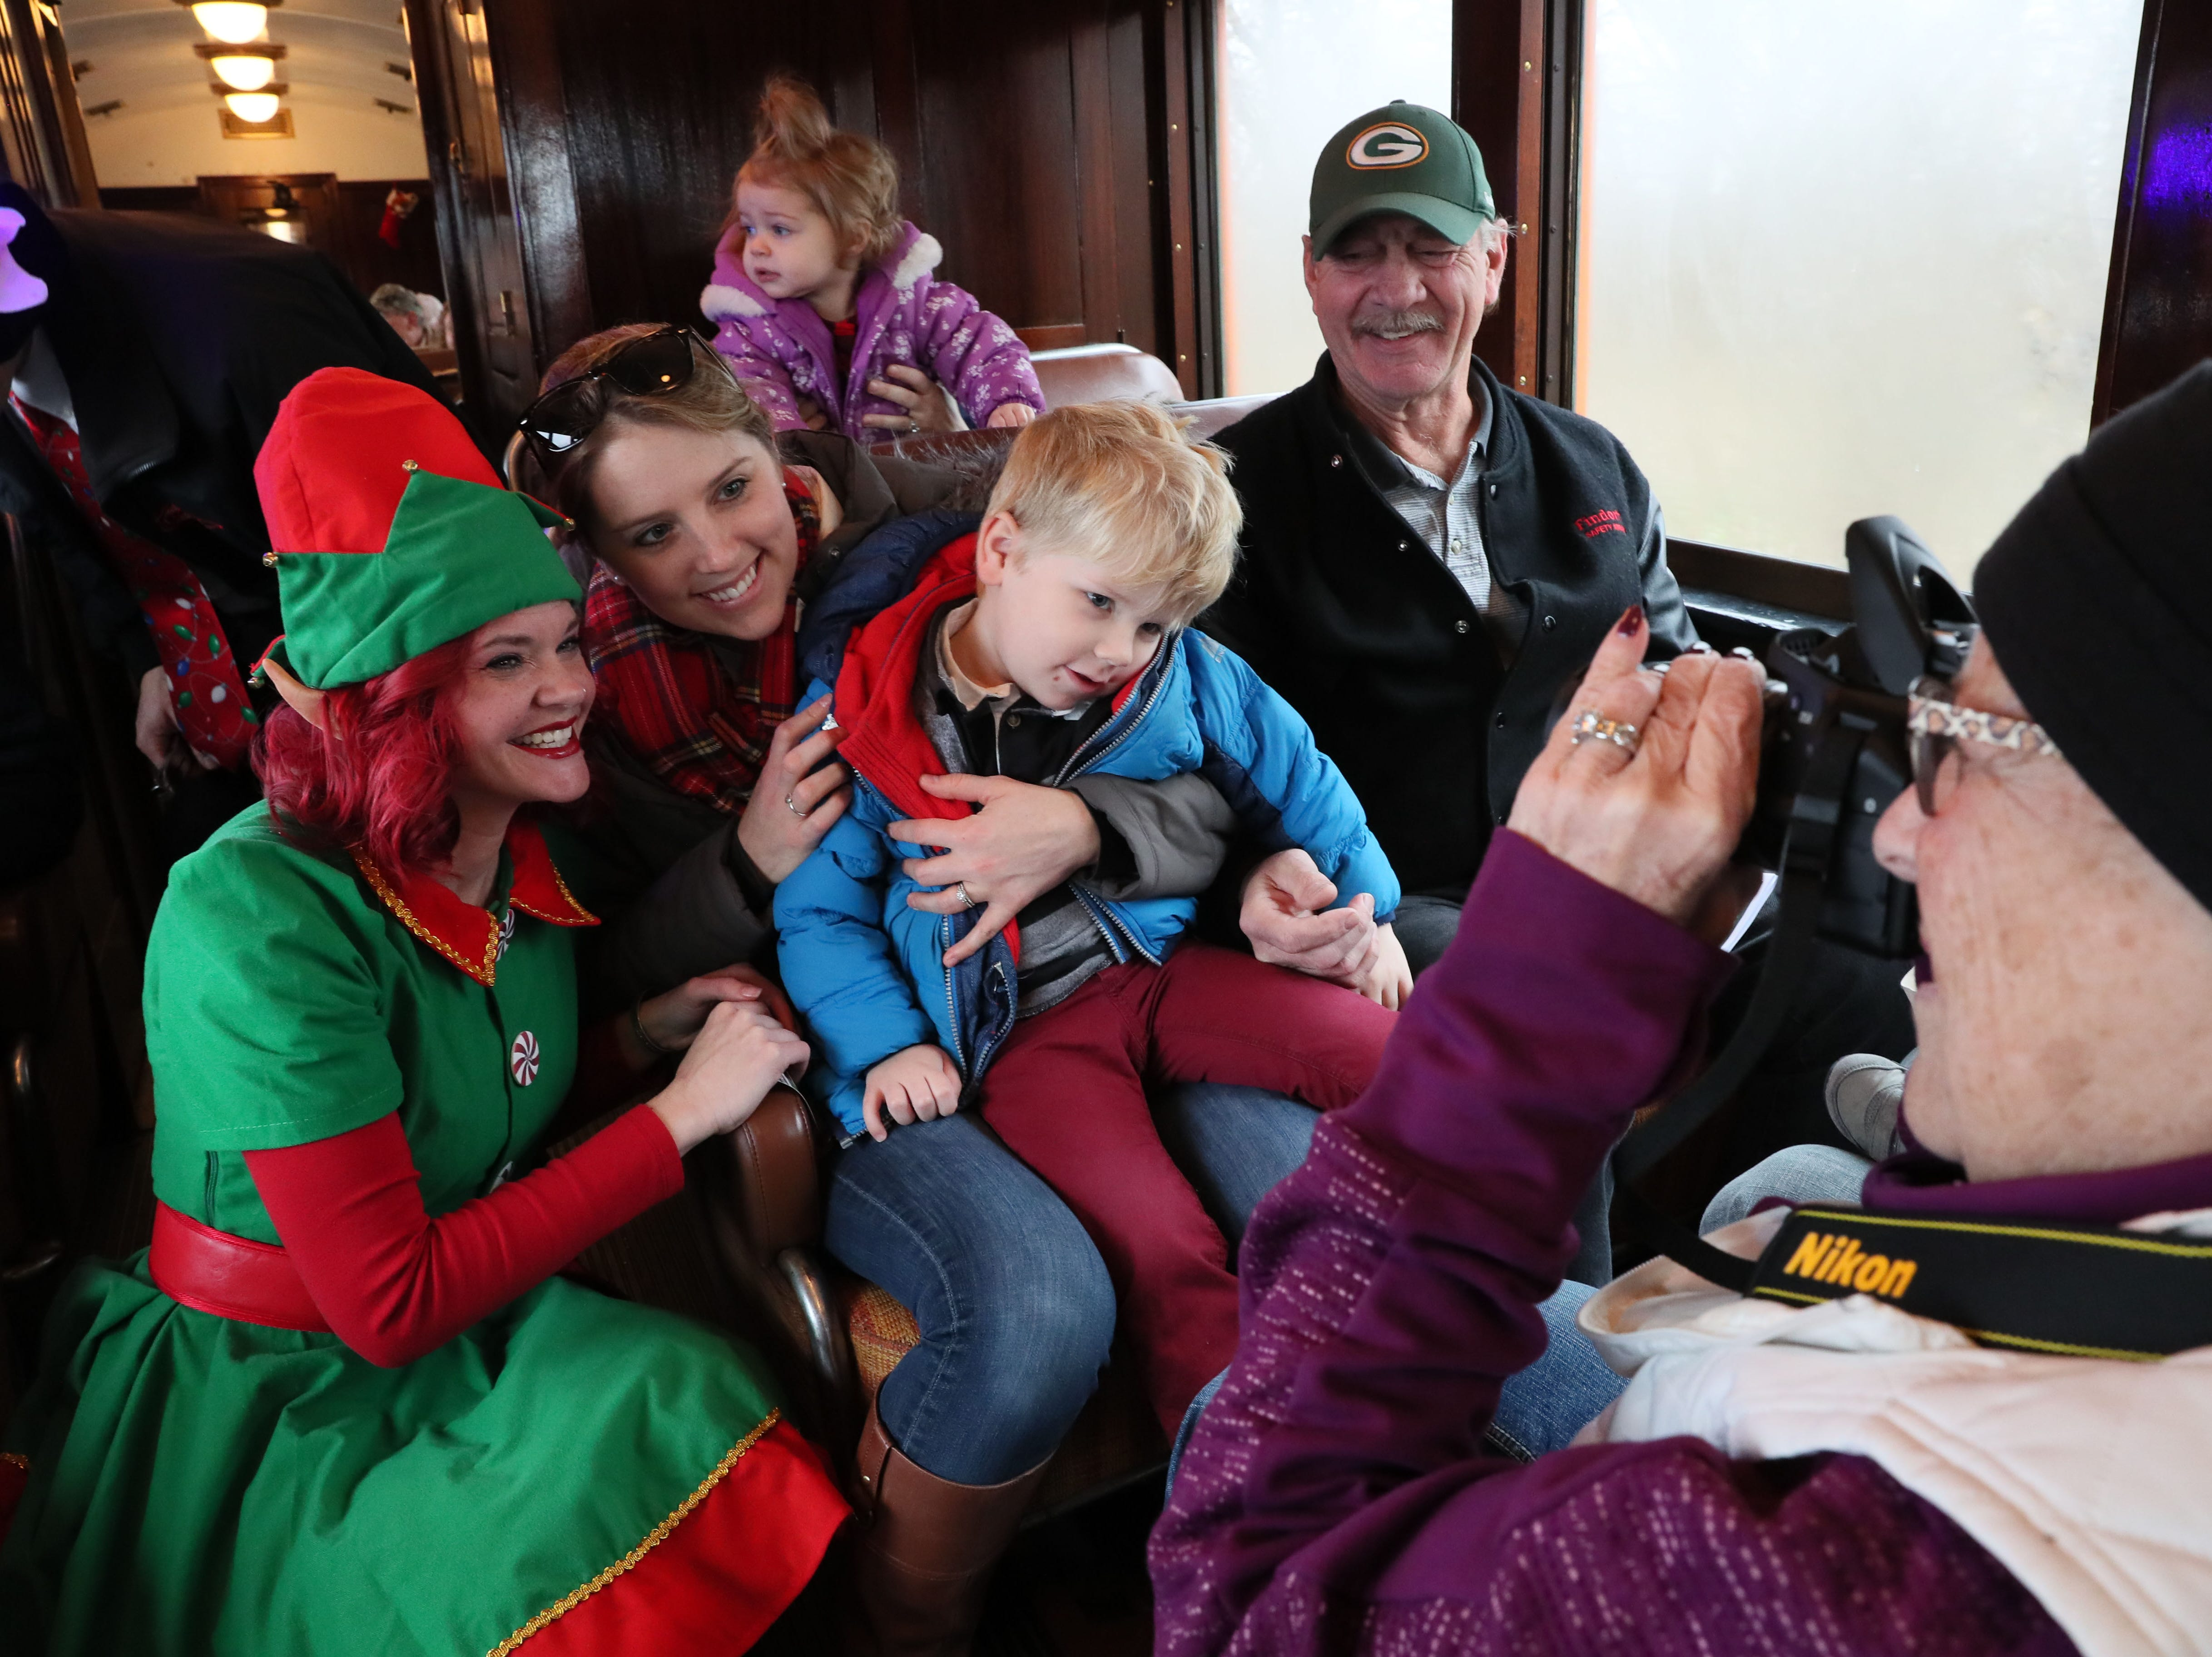 Santa's elf, Anna Gleason, poses with Danielle Wampole of Lake Mills and her  son, Emmett, 3, as his grandfather Doug Wampole of Madison looks on. Grandmother Alice Wampole takes their photo.